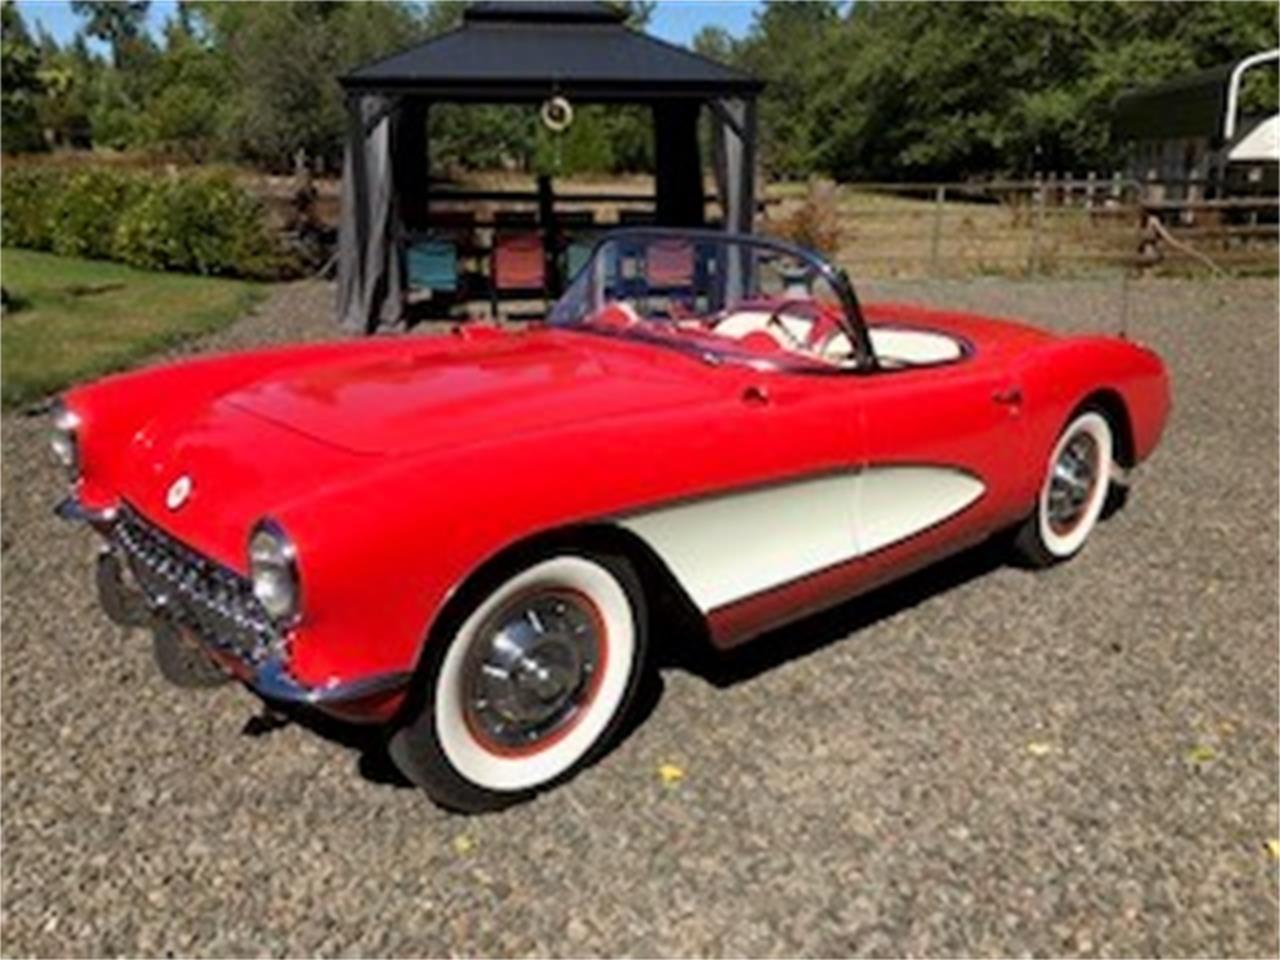 Large Picture of 1957 Chevrolet Corvette located in seabeck Washington - $83,500.00 Offered by a Private Seller - QNXH